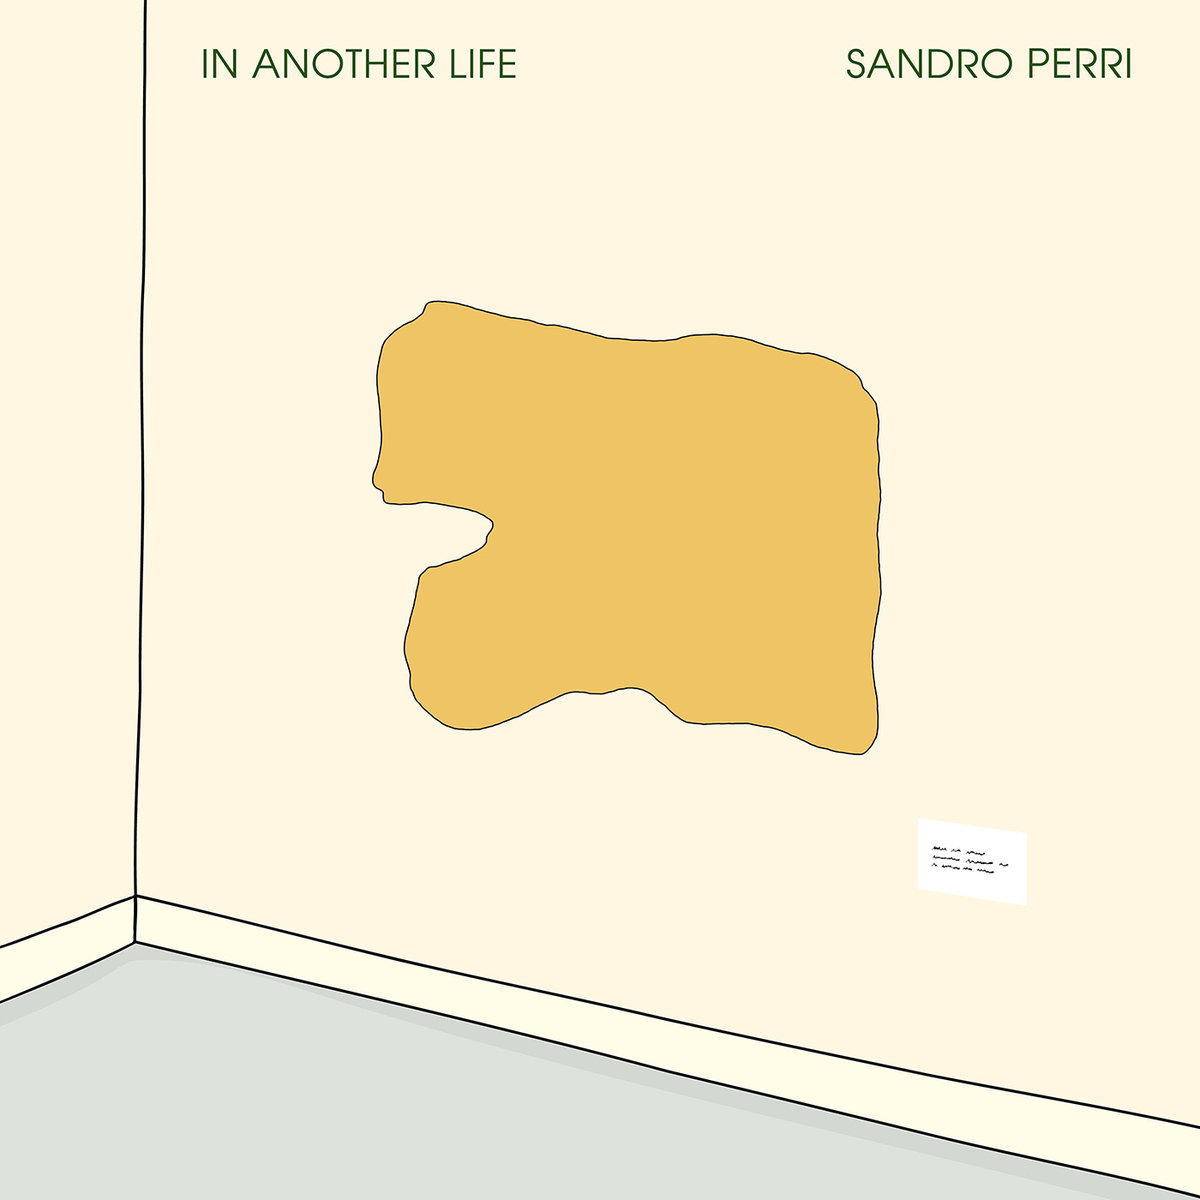 """""""Brilliant album by Sandro Perri! It has just the right amount of sunshine for my taste, and it captures those mellow 80's feel-good vibes in the most sublime and addictive ways"""" - - Lost Tribe Sound"""